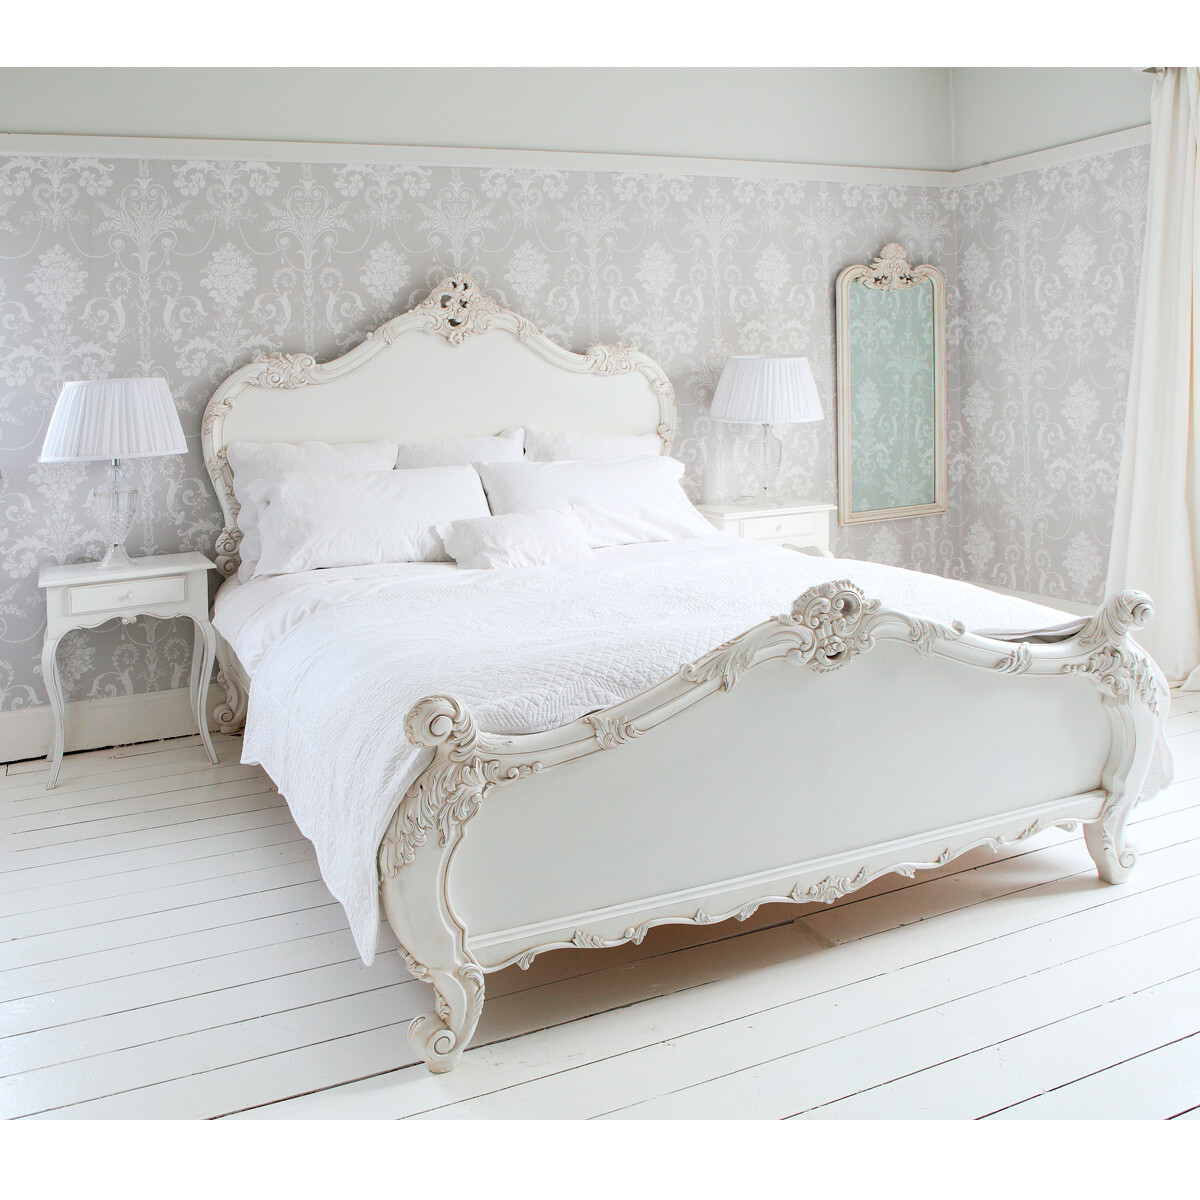 French bed rafinament elegance and romance in your bedroom - Lit provencal ...